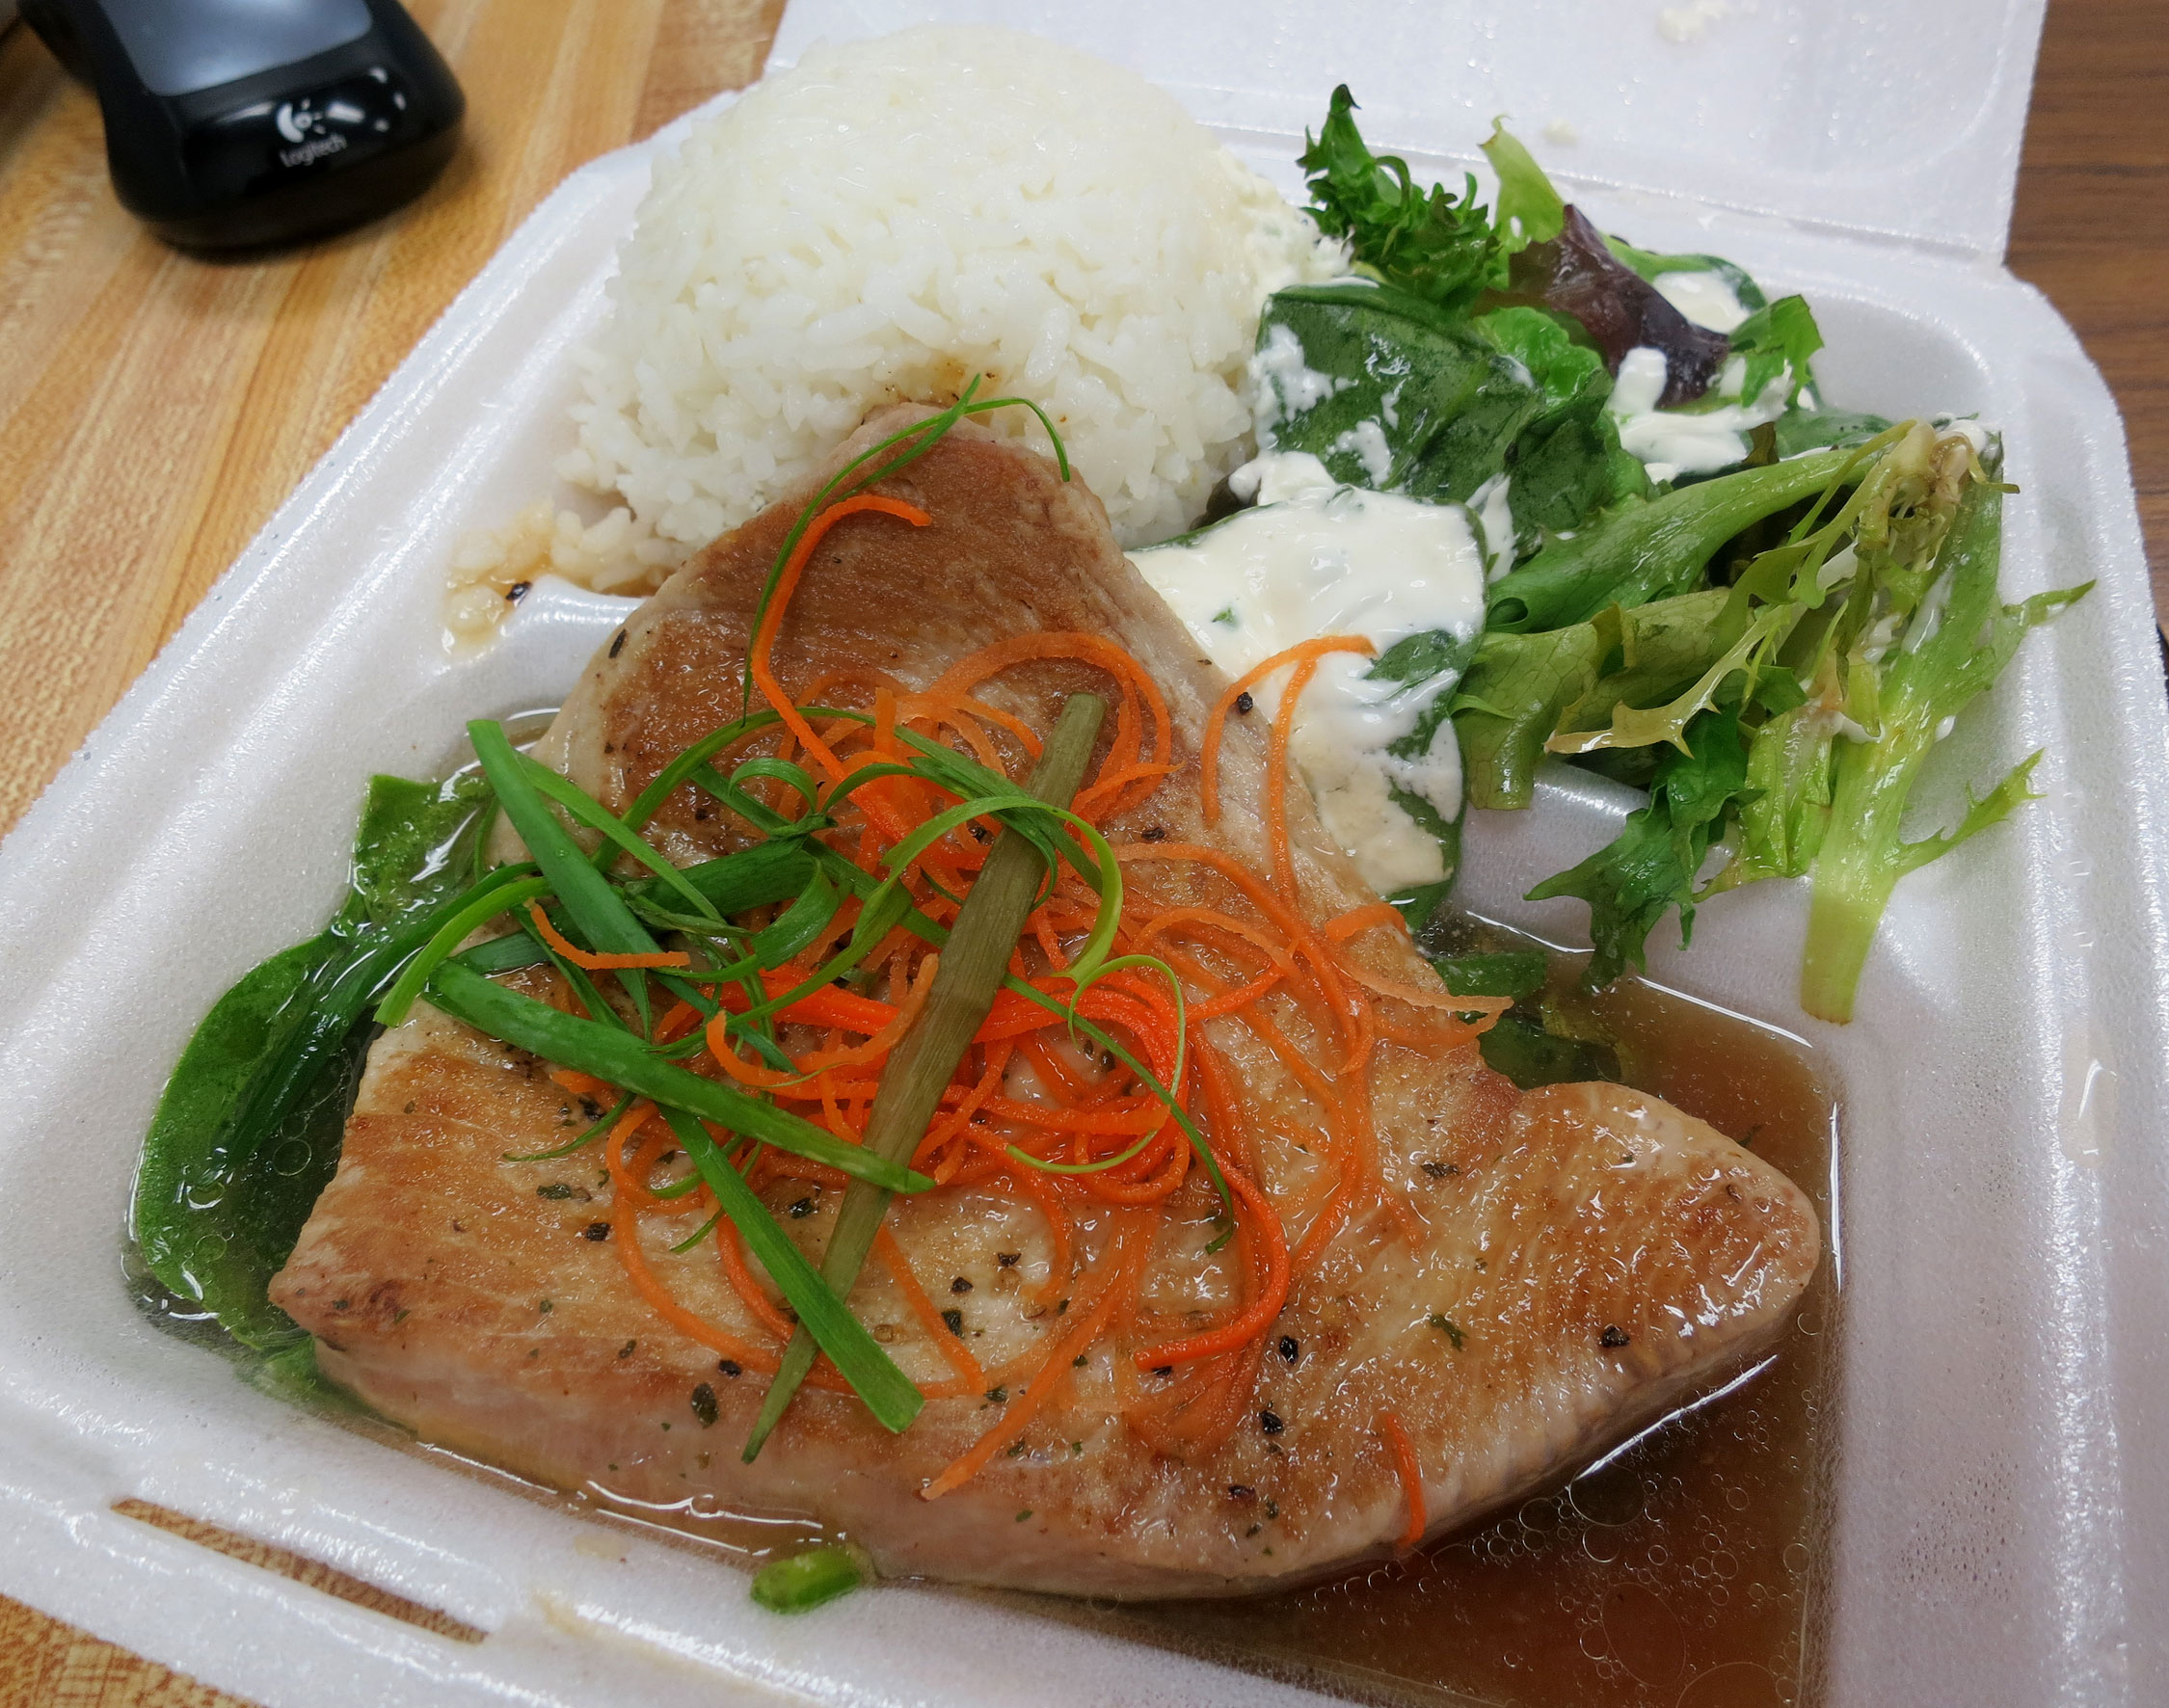 ... : Grilled Ahi Steak with Ginger Green Onion Sauce and Tossed Salad